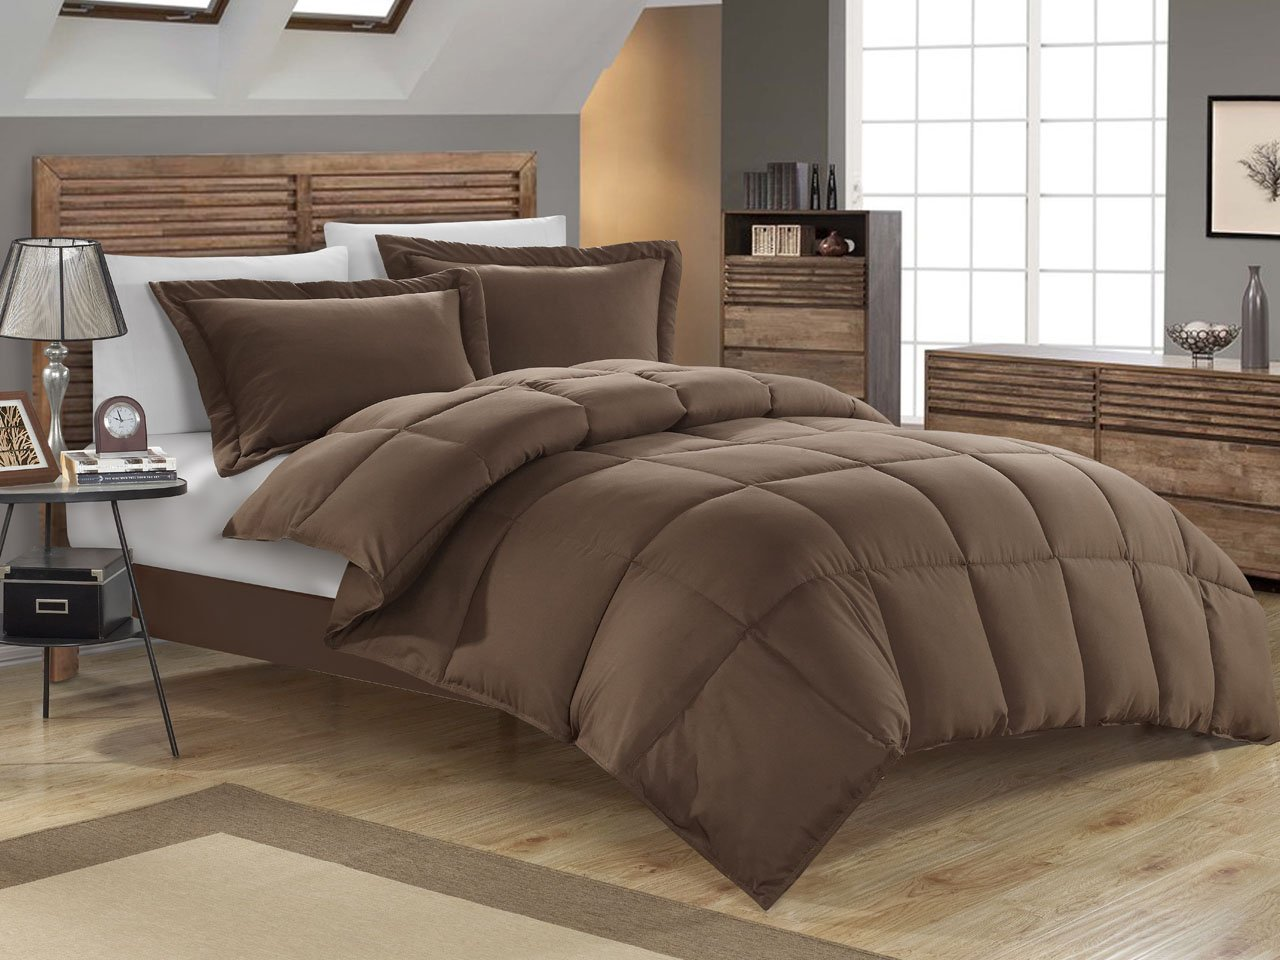 KingLinen® Chocolate Down Alternative Comforter Set King